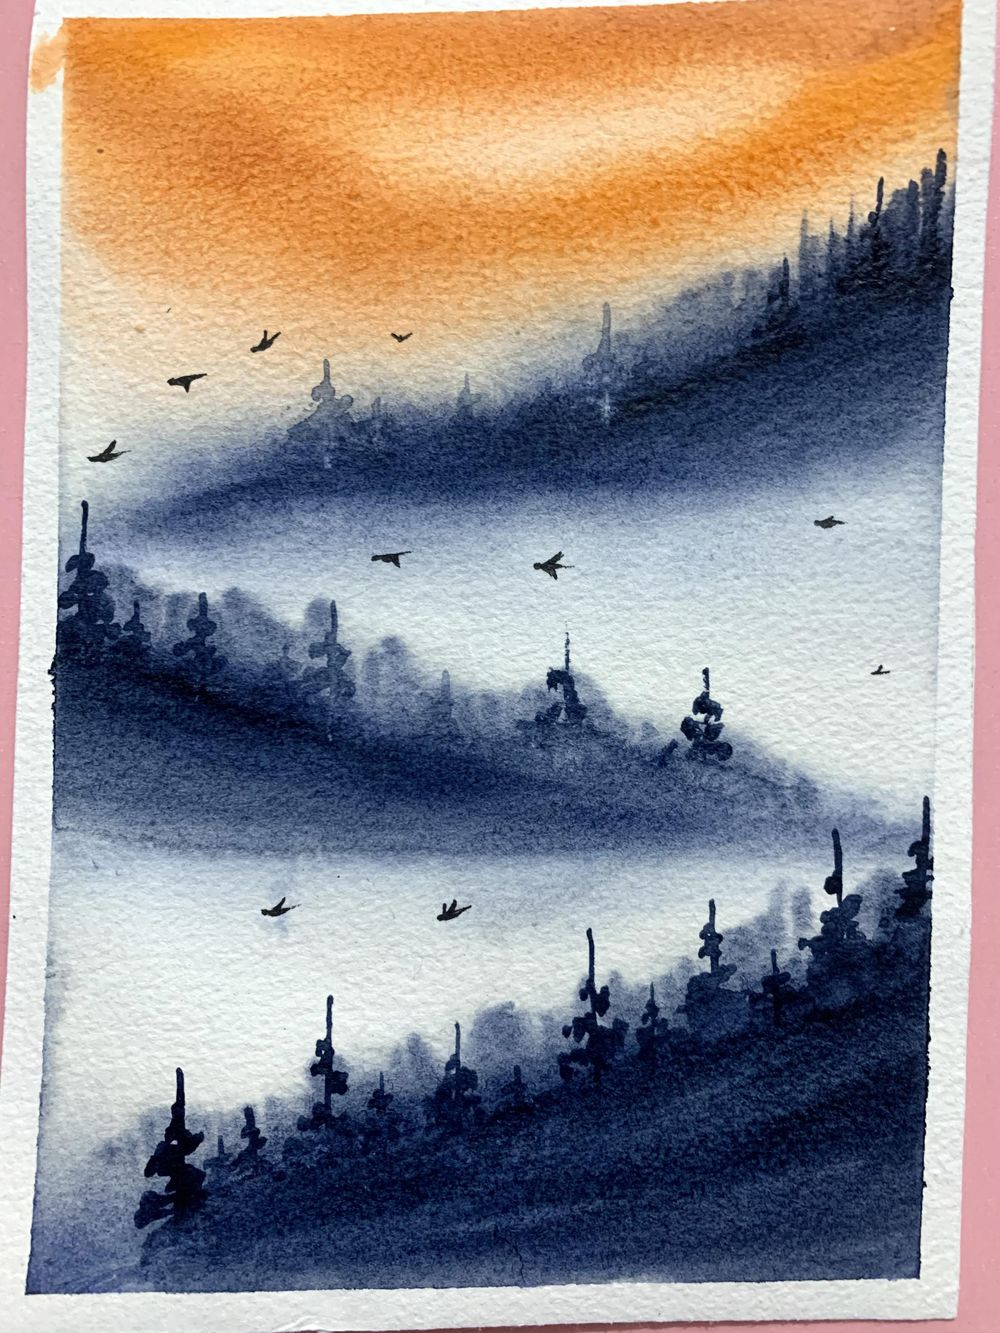 Misty mountains - image 6 - student project